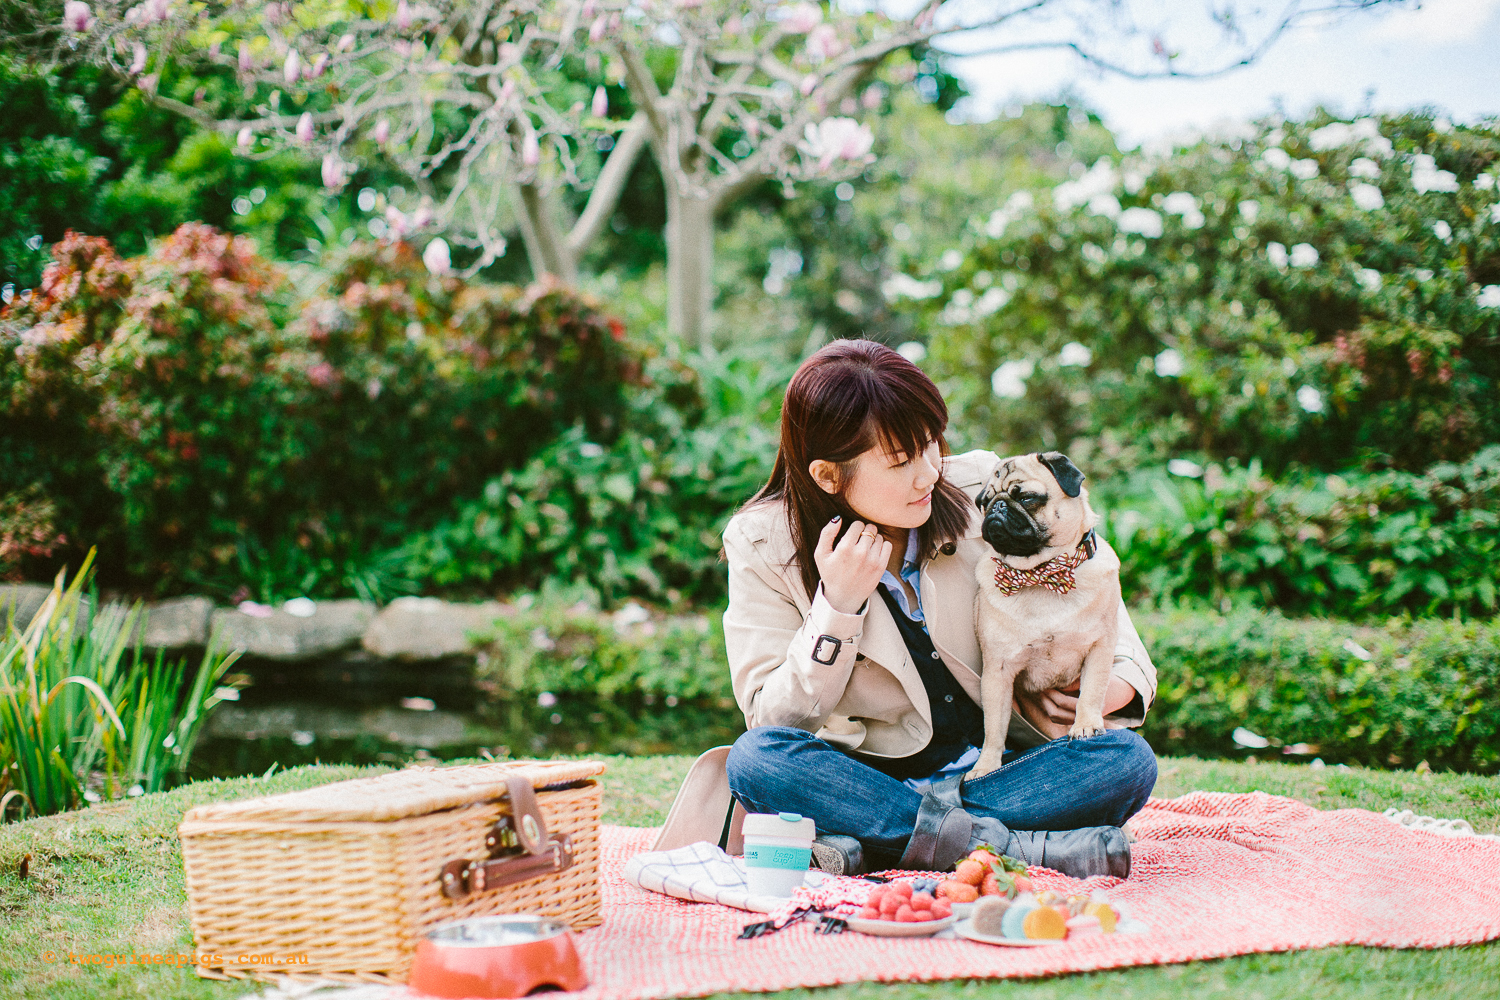 twoguineapigs_pet_photography_oh_jaffa_picnic_pugs_rodger_1500-15.jpg